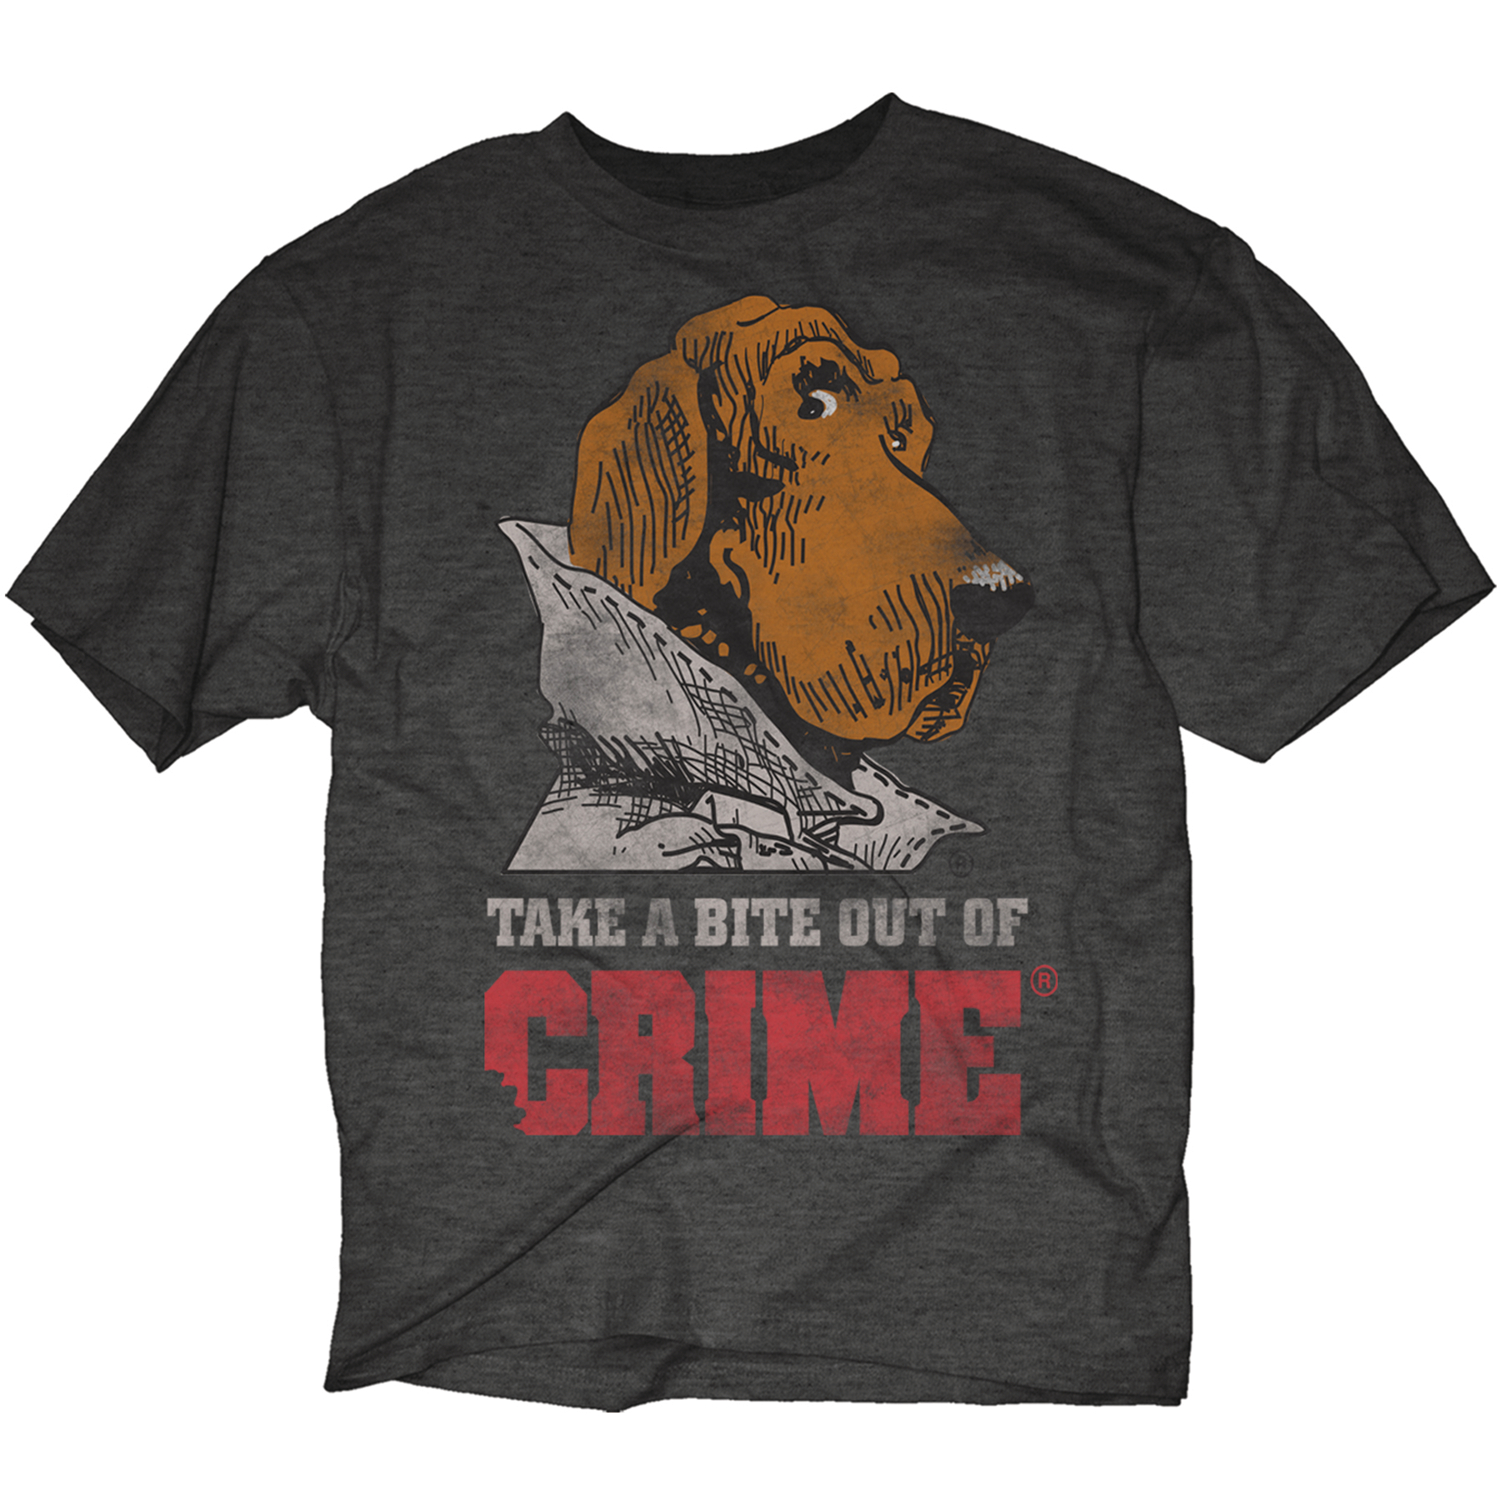 MCGRUFF TAKE A BITE OUT OF CRIME DISTR GRAY T/S MED